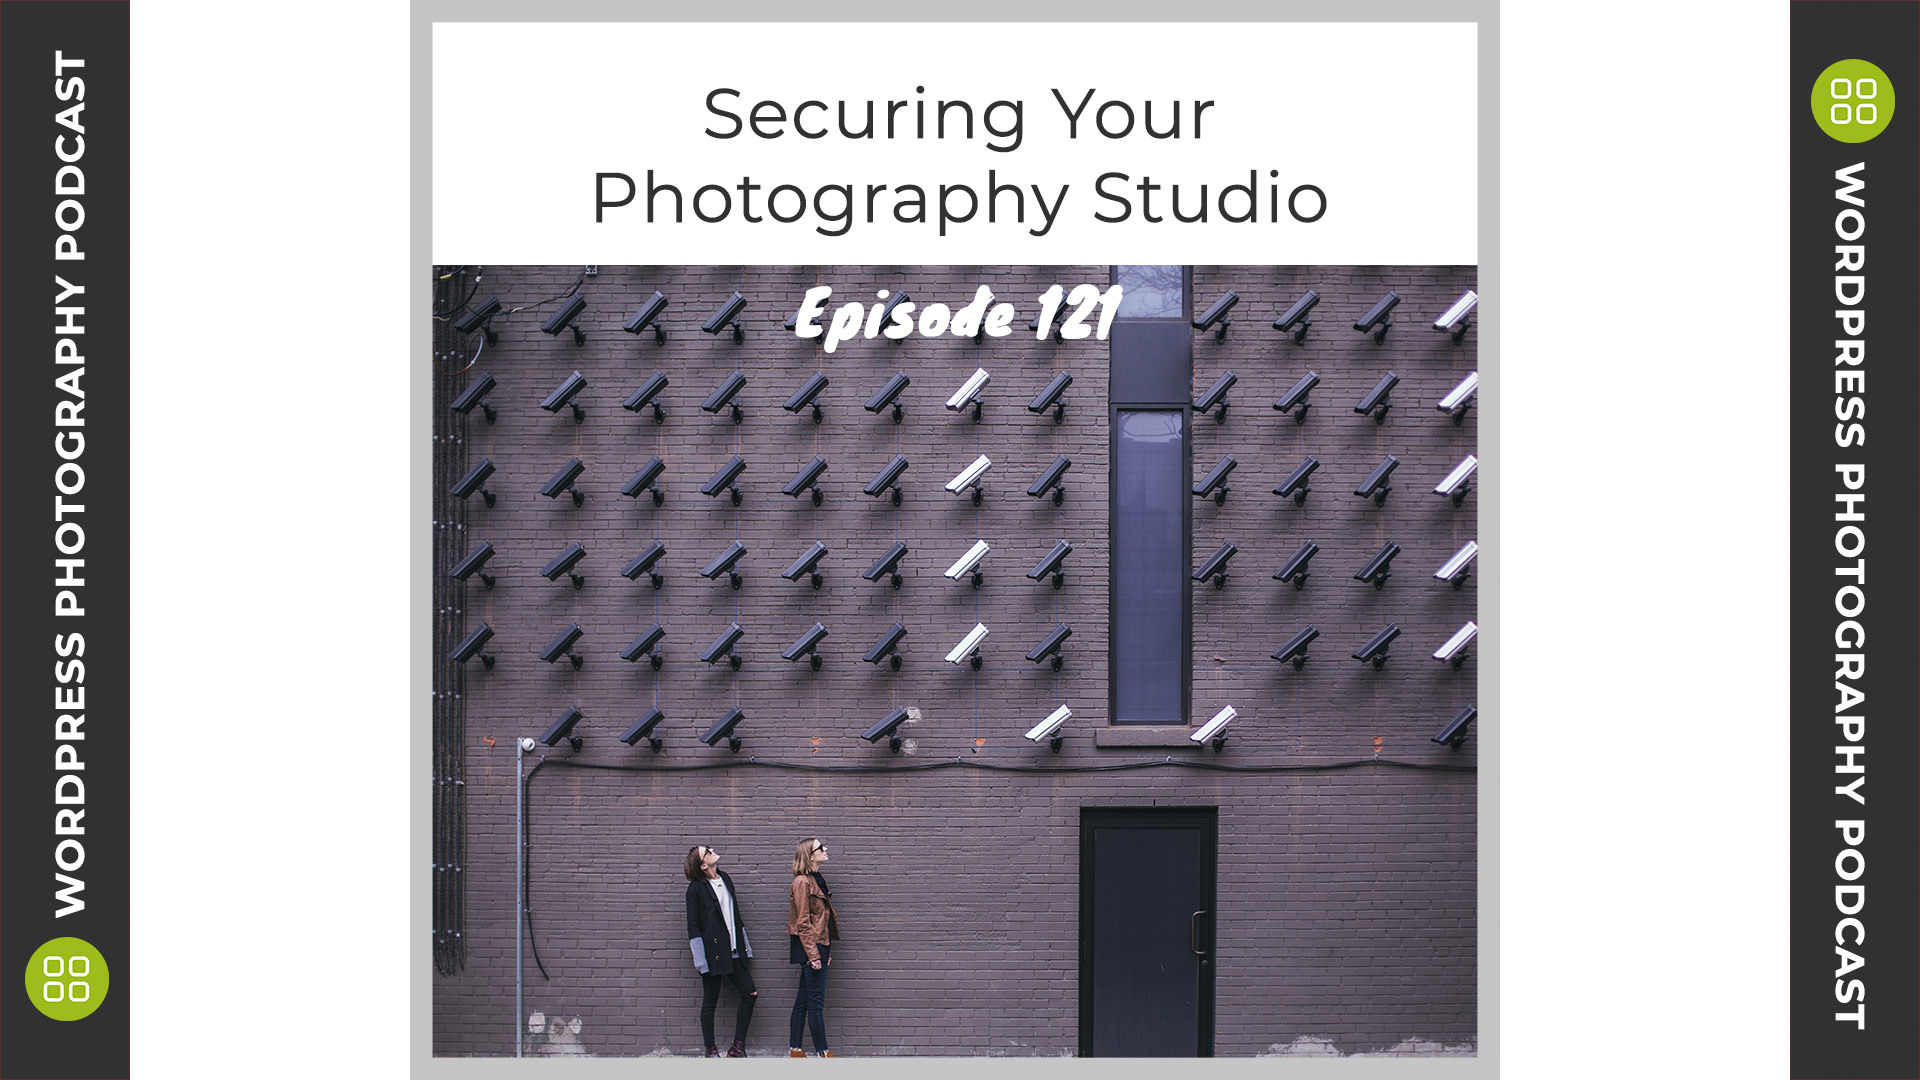 Episode 121 – Securing Your Photography Studio